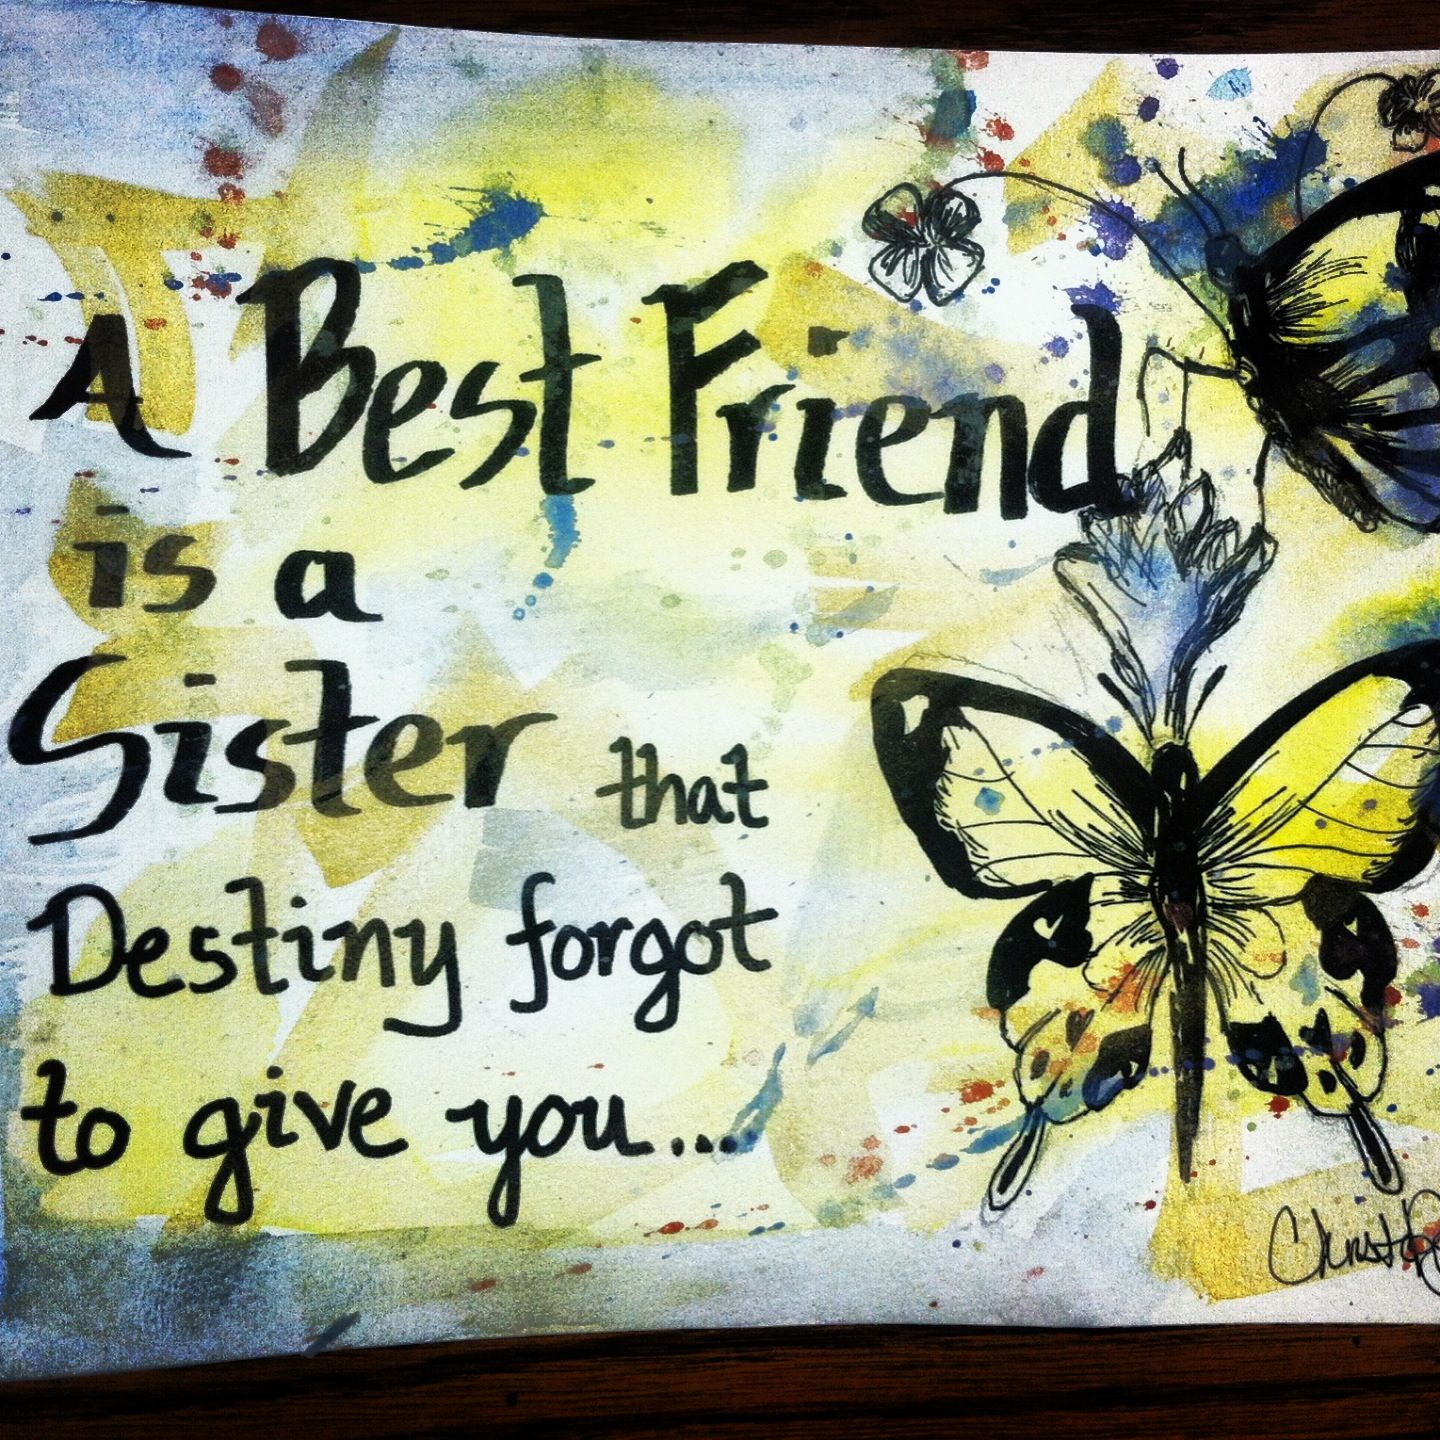 A best friend is a sister destiny forgot to give you quick – Quotes for Best Friends Birthday Cards